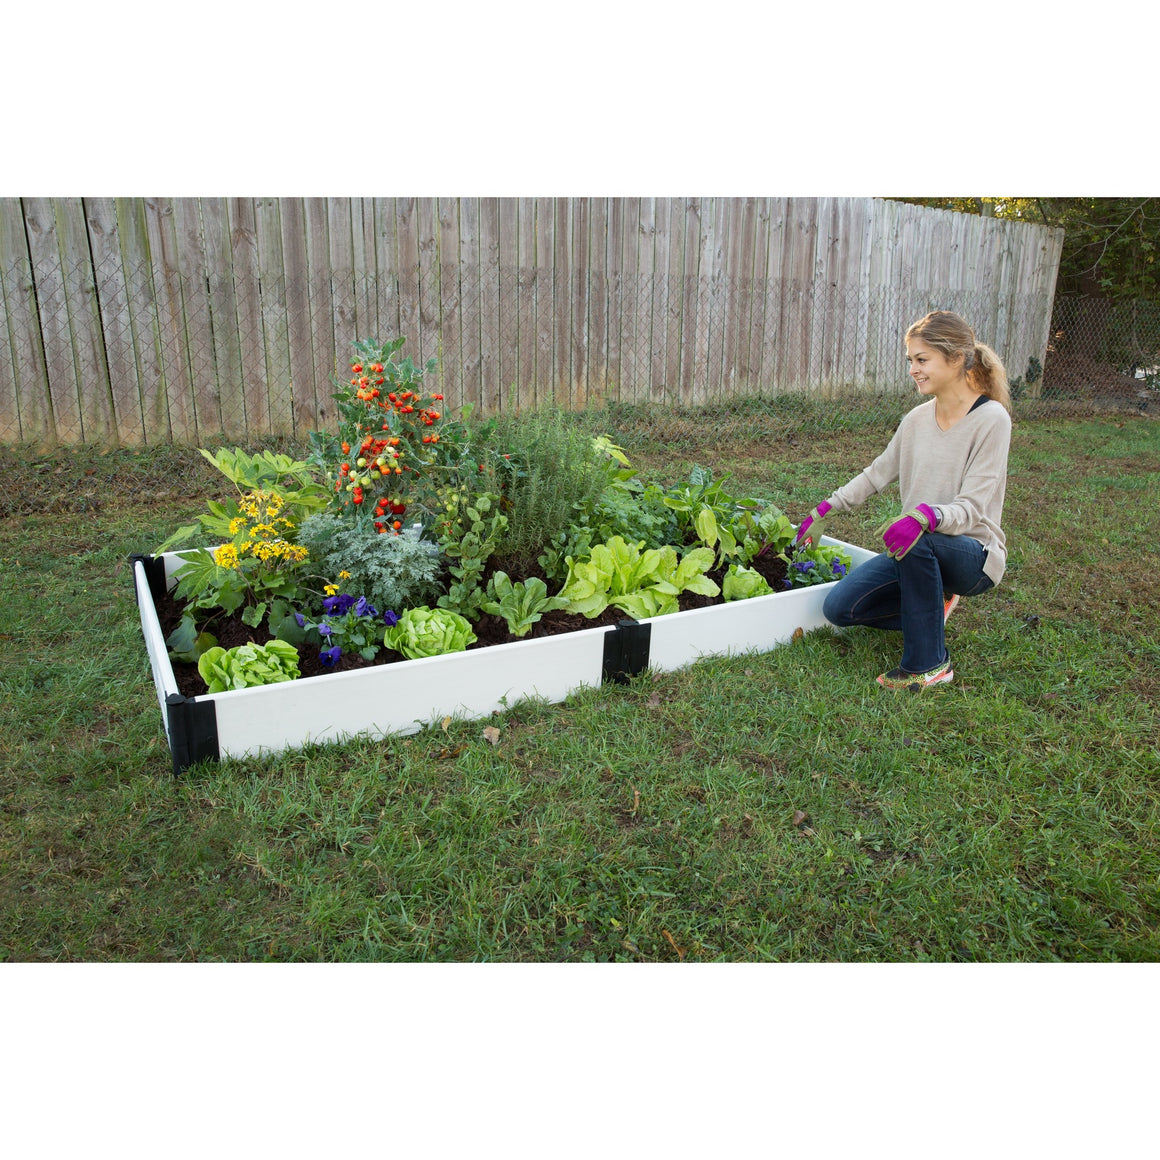 Raised Garden Bed - Composite Classic White Rectangle. Shown on lawn woman kneeling next to bed filled with plants